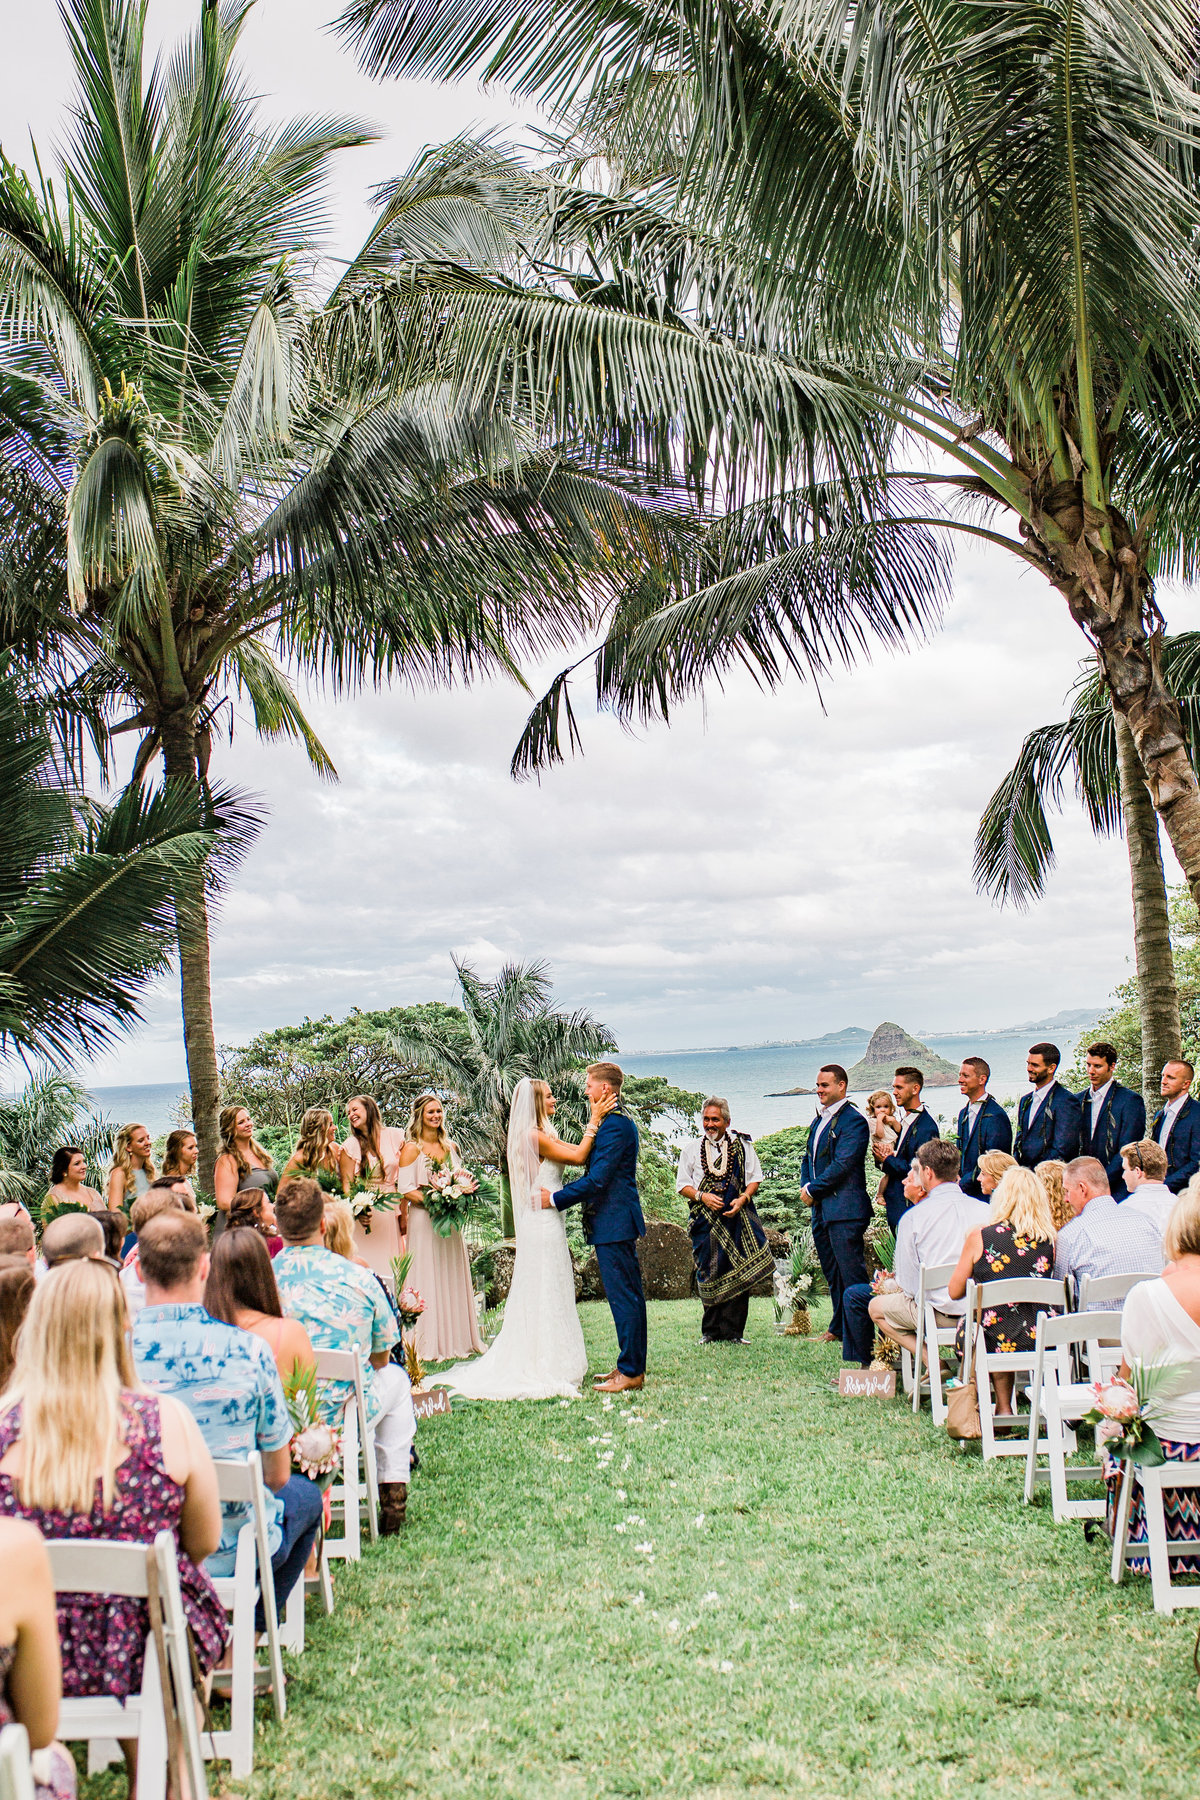 paliku gardens kualoa ranch wedding 6A0979-4